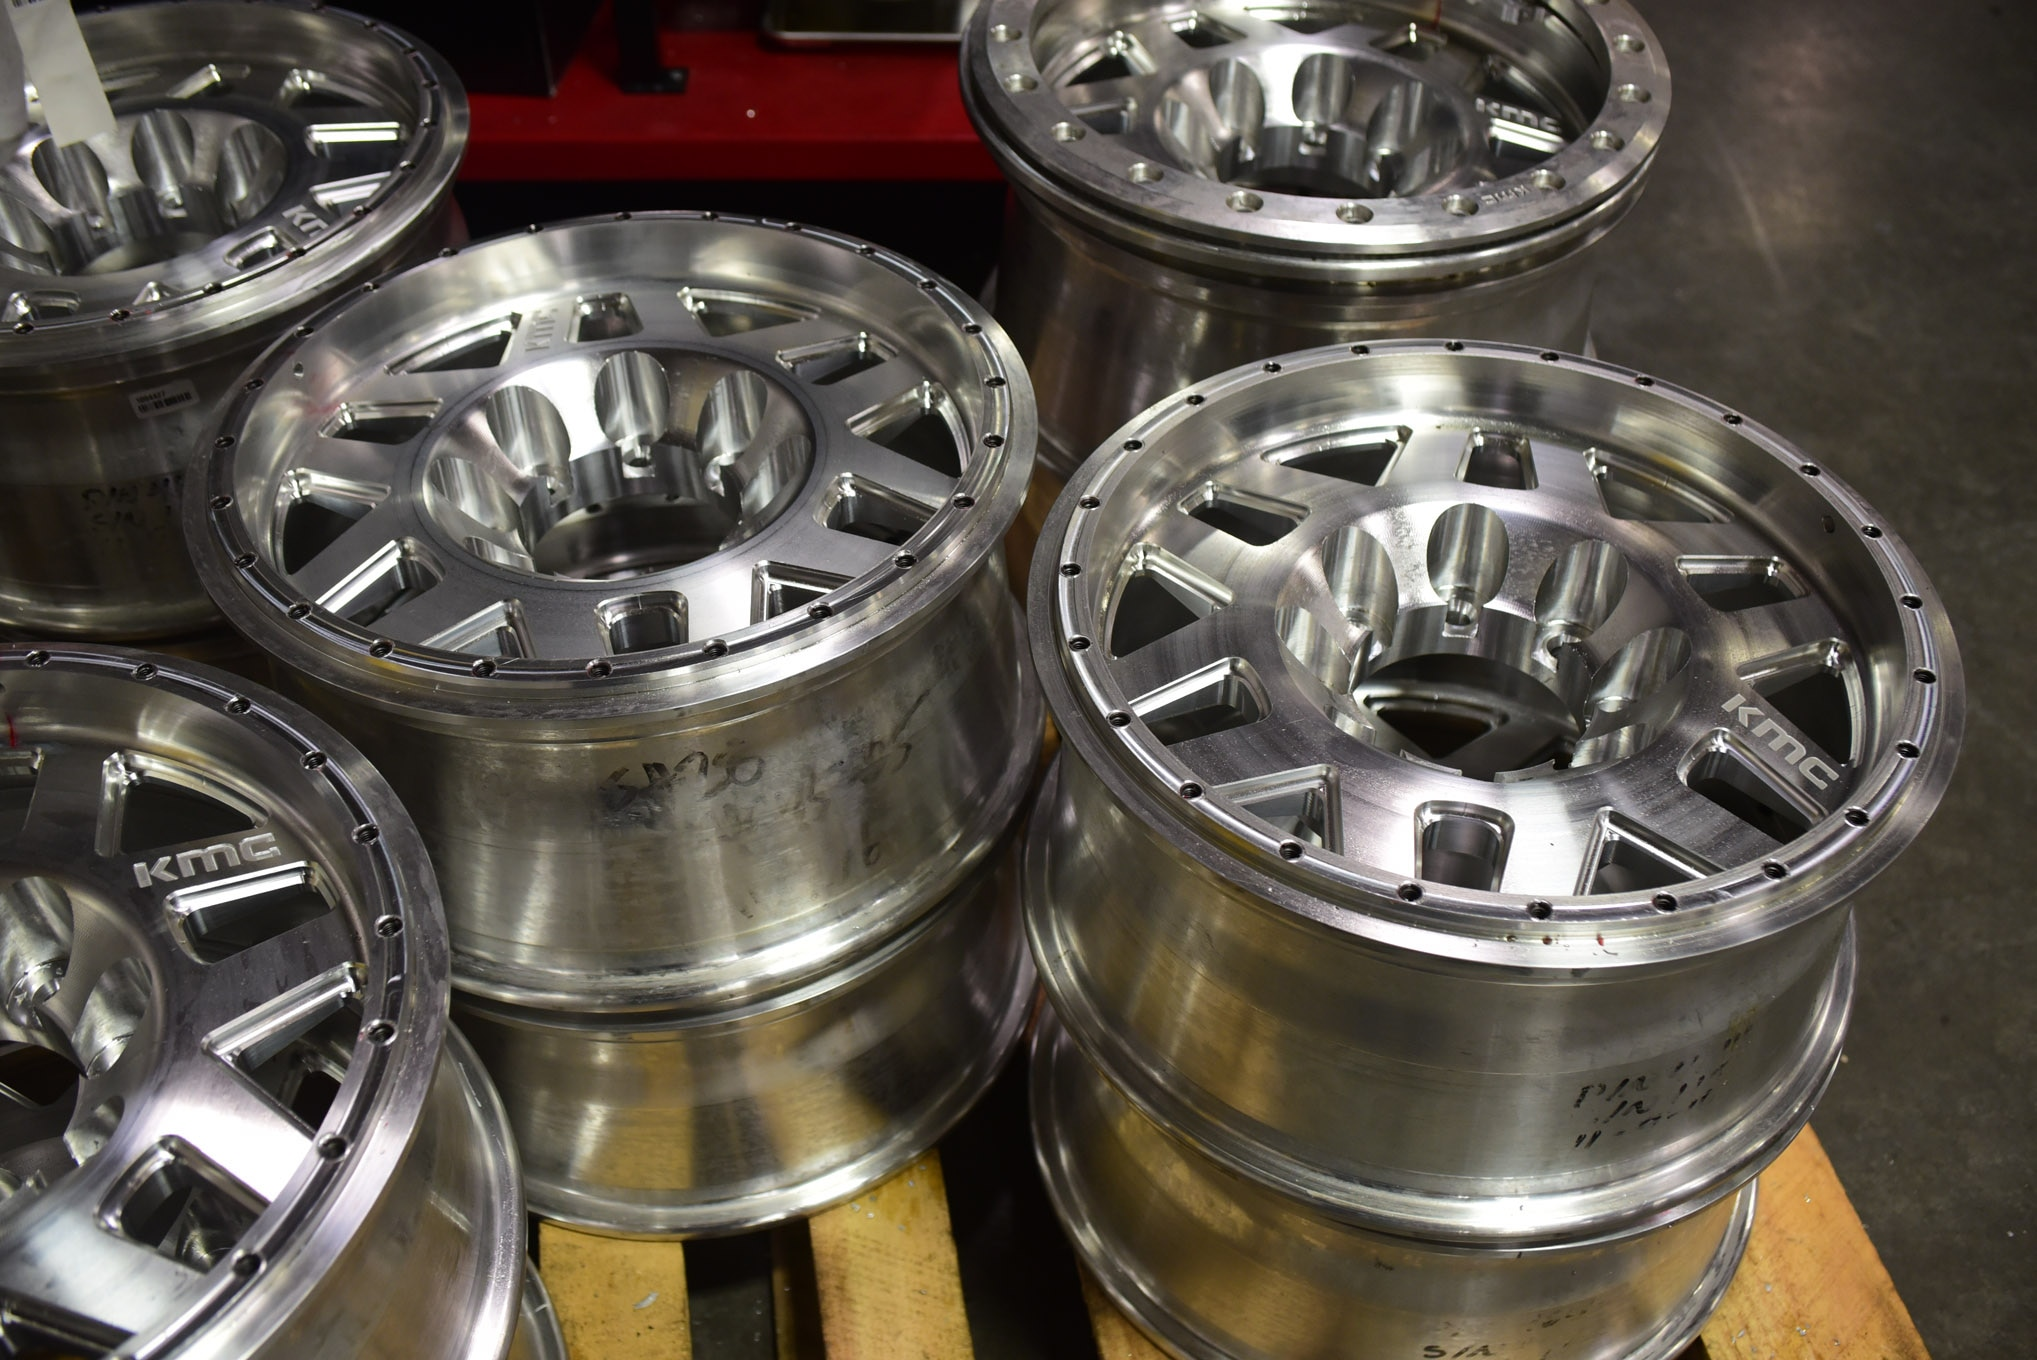 A pallet full of finished forged aluminum monoblock wheels, milled and bored, are ready for final inspection prior to shipping out.